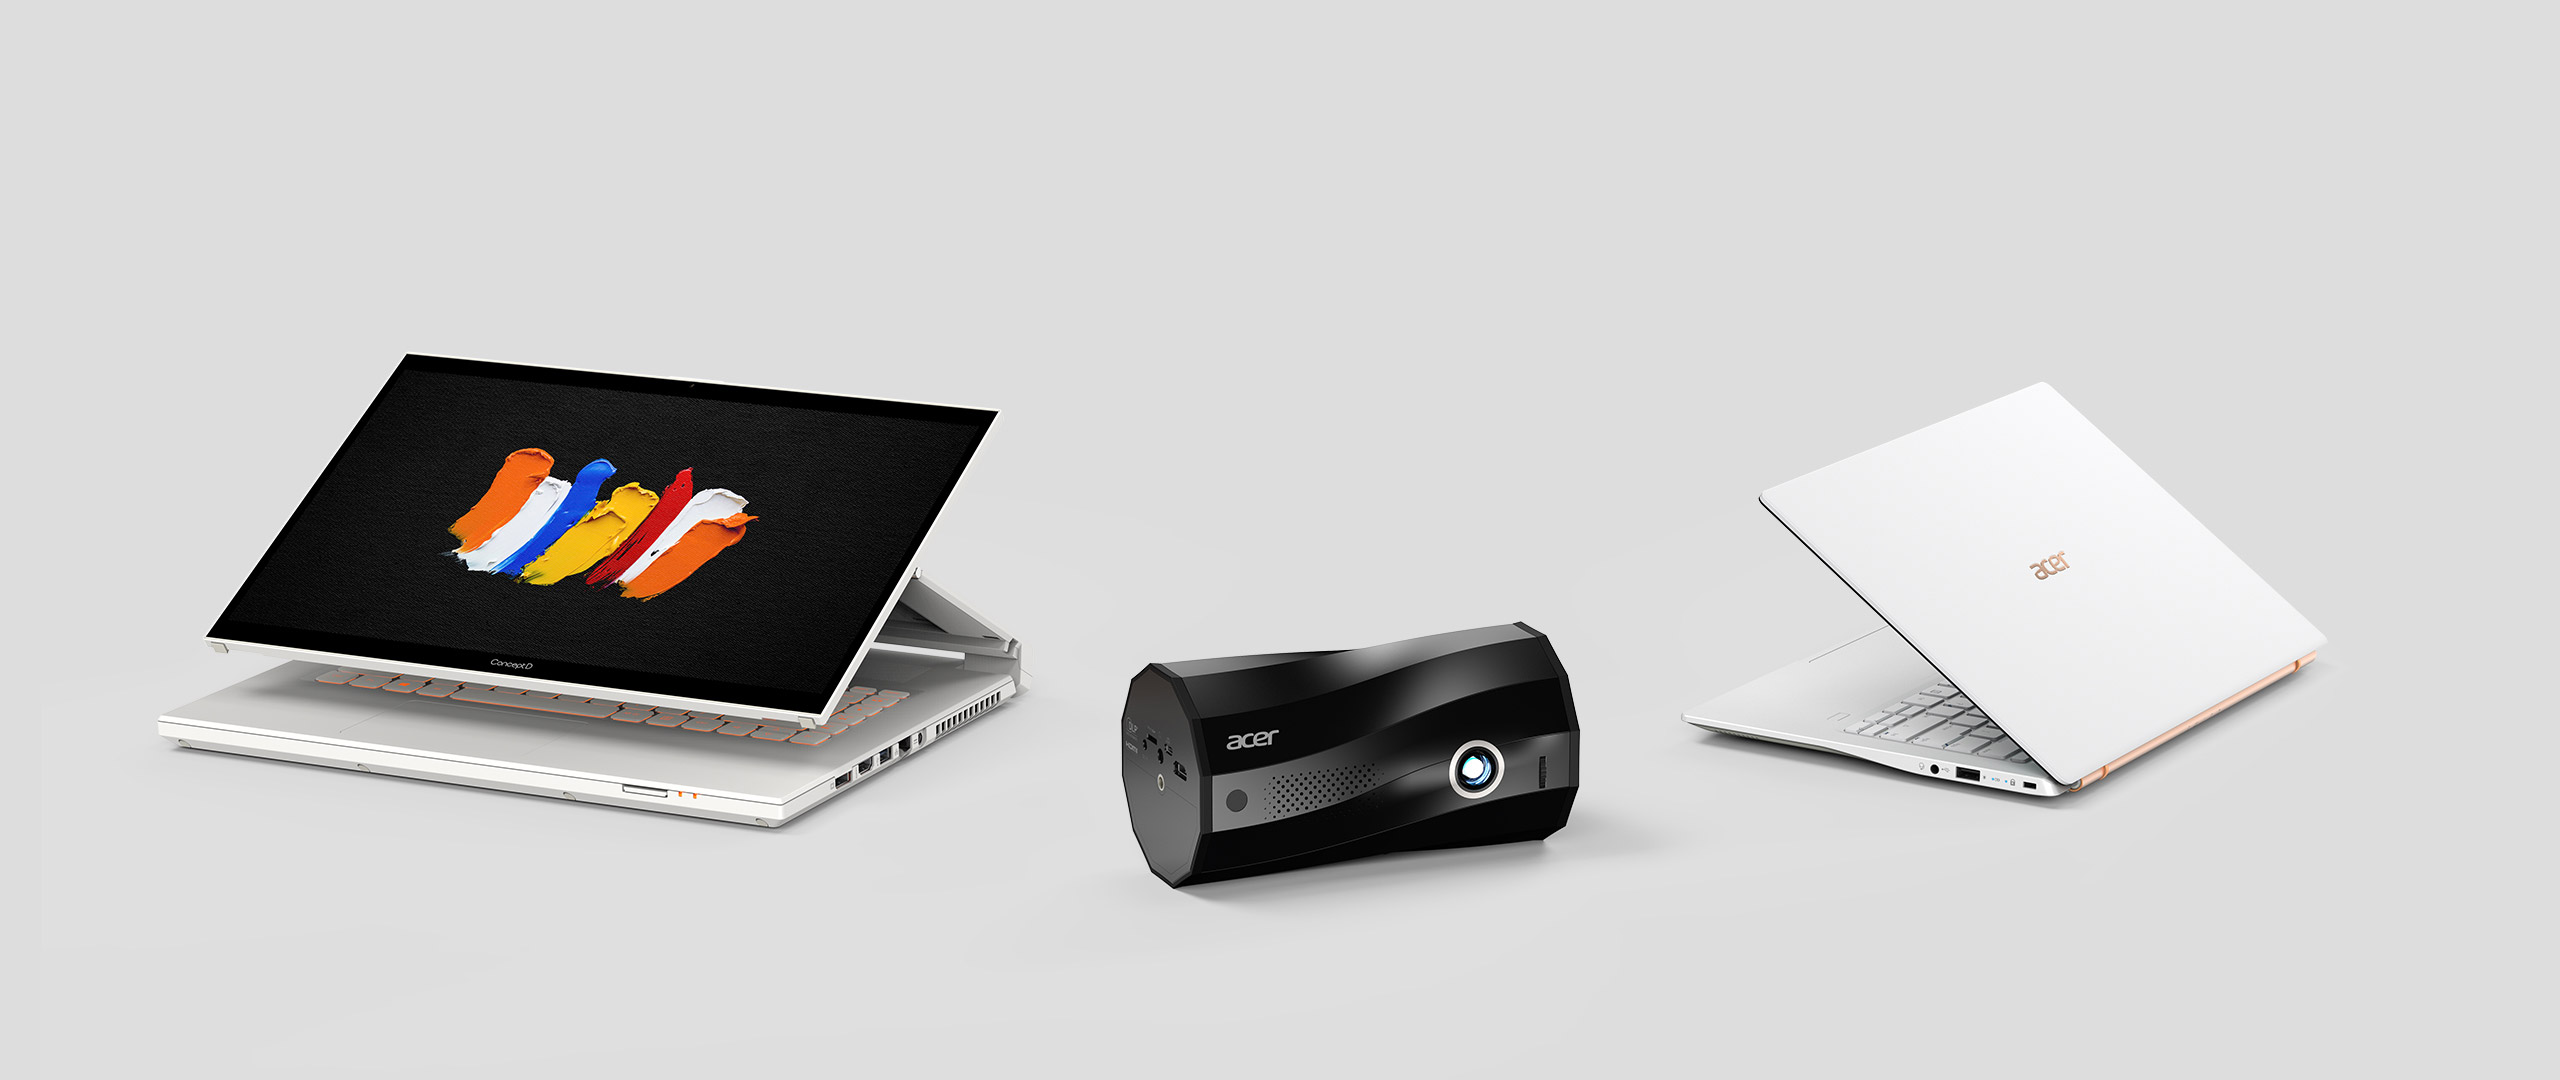 CES Innovation Award Honoree Product Line-Up